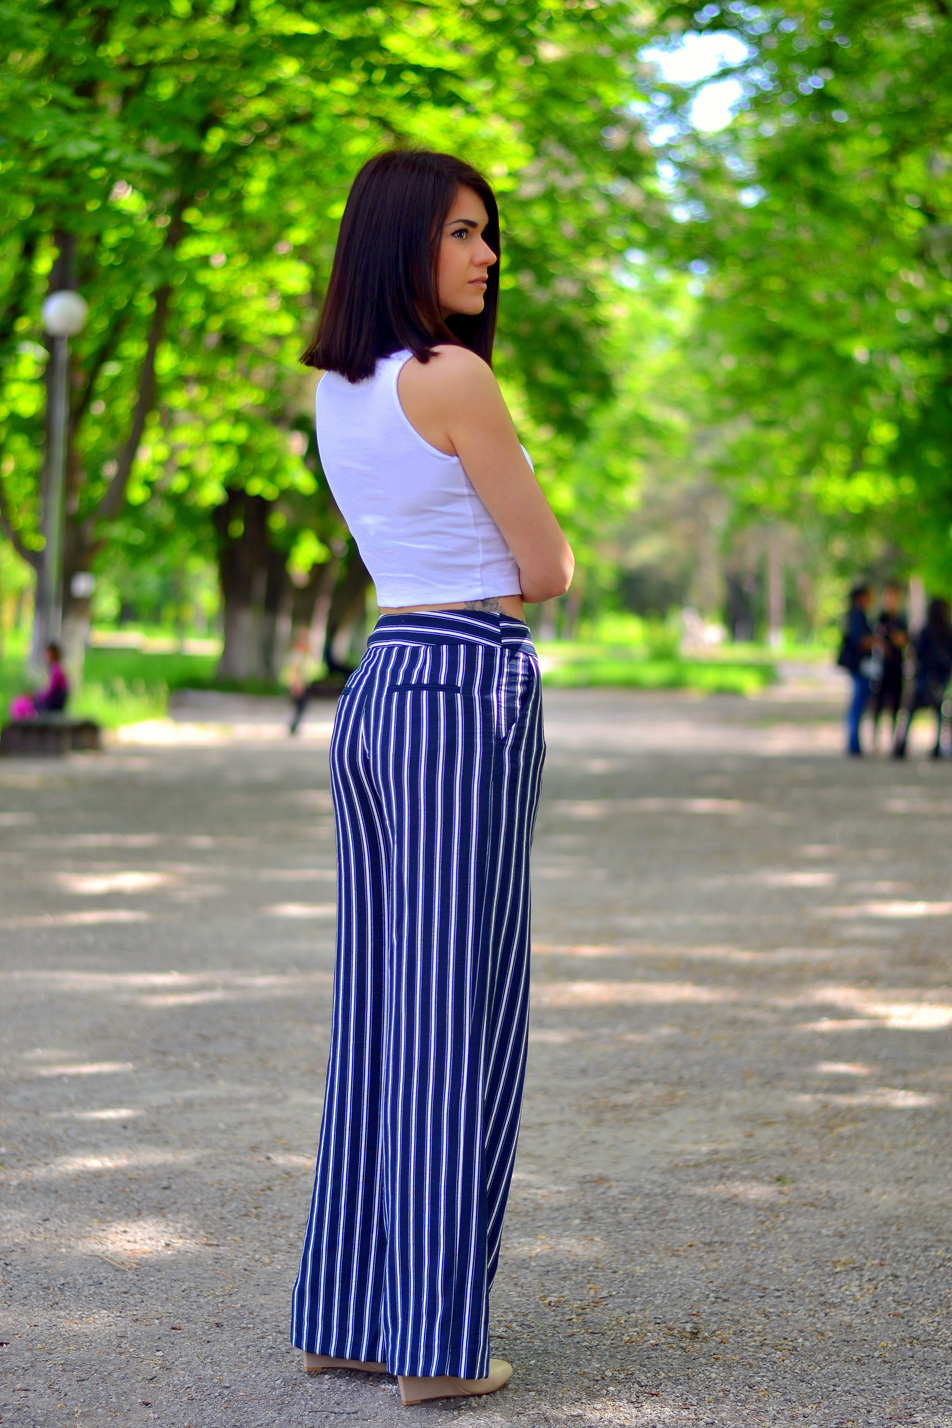 Wide Leg Pants South Africa - White Pants 2016